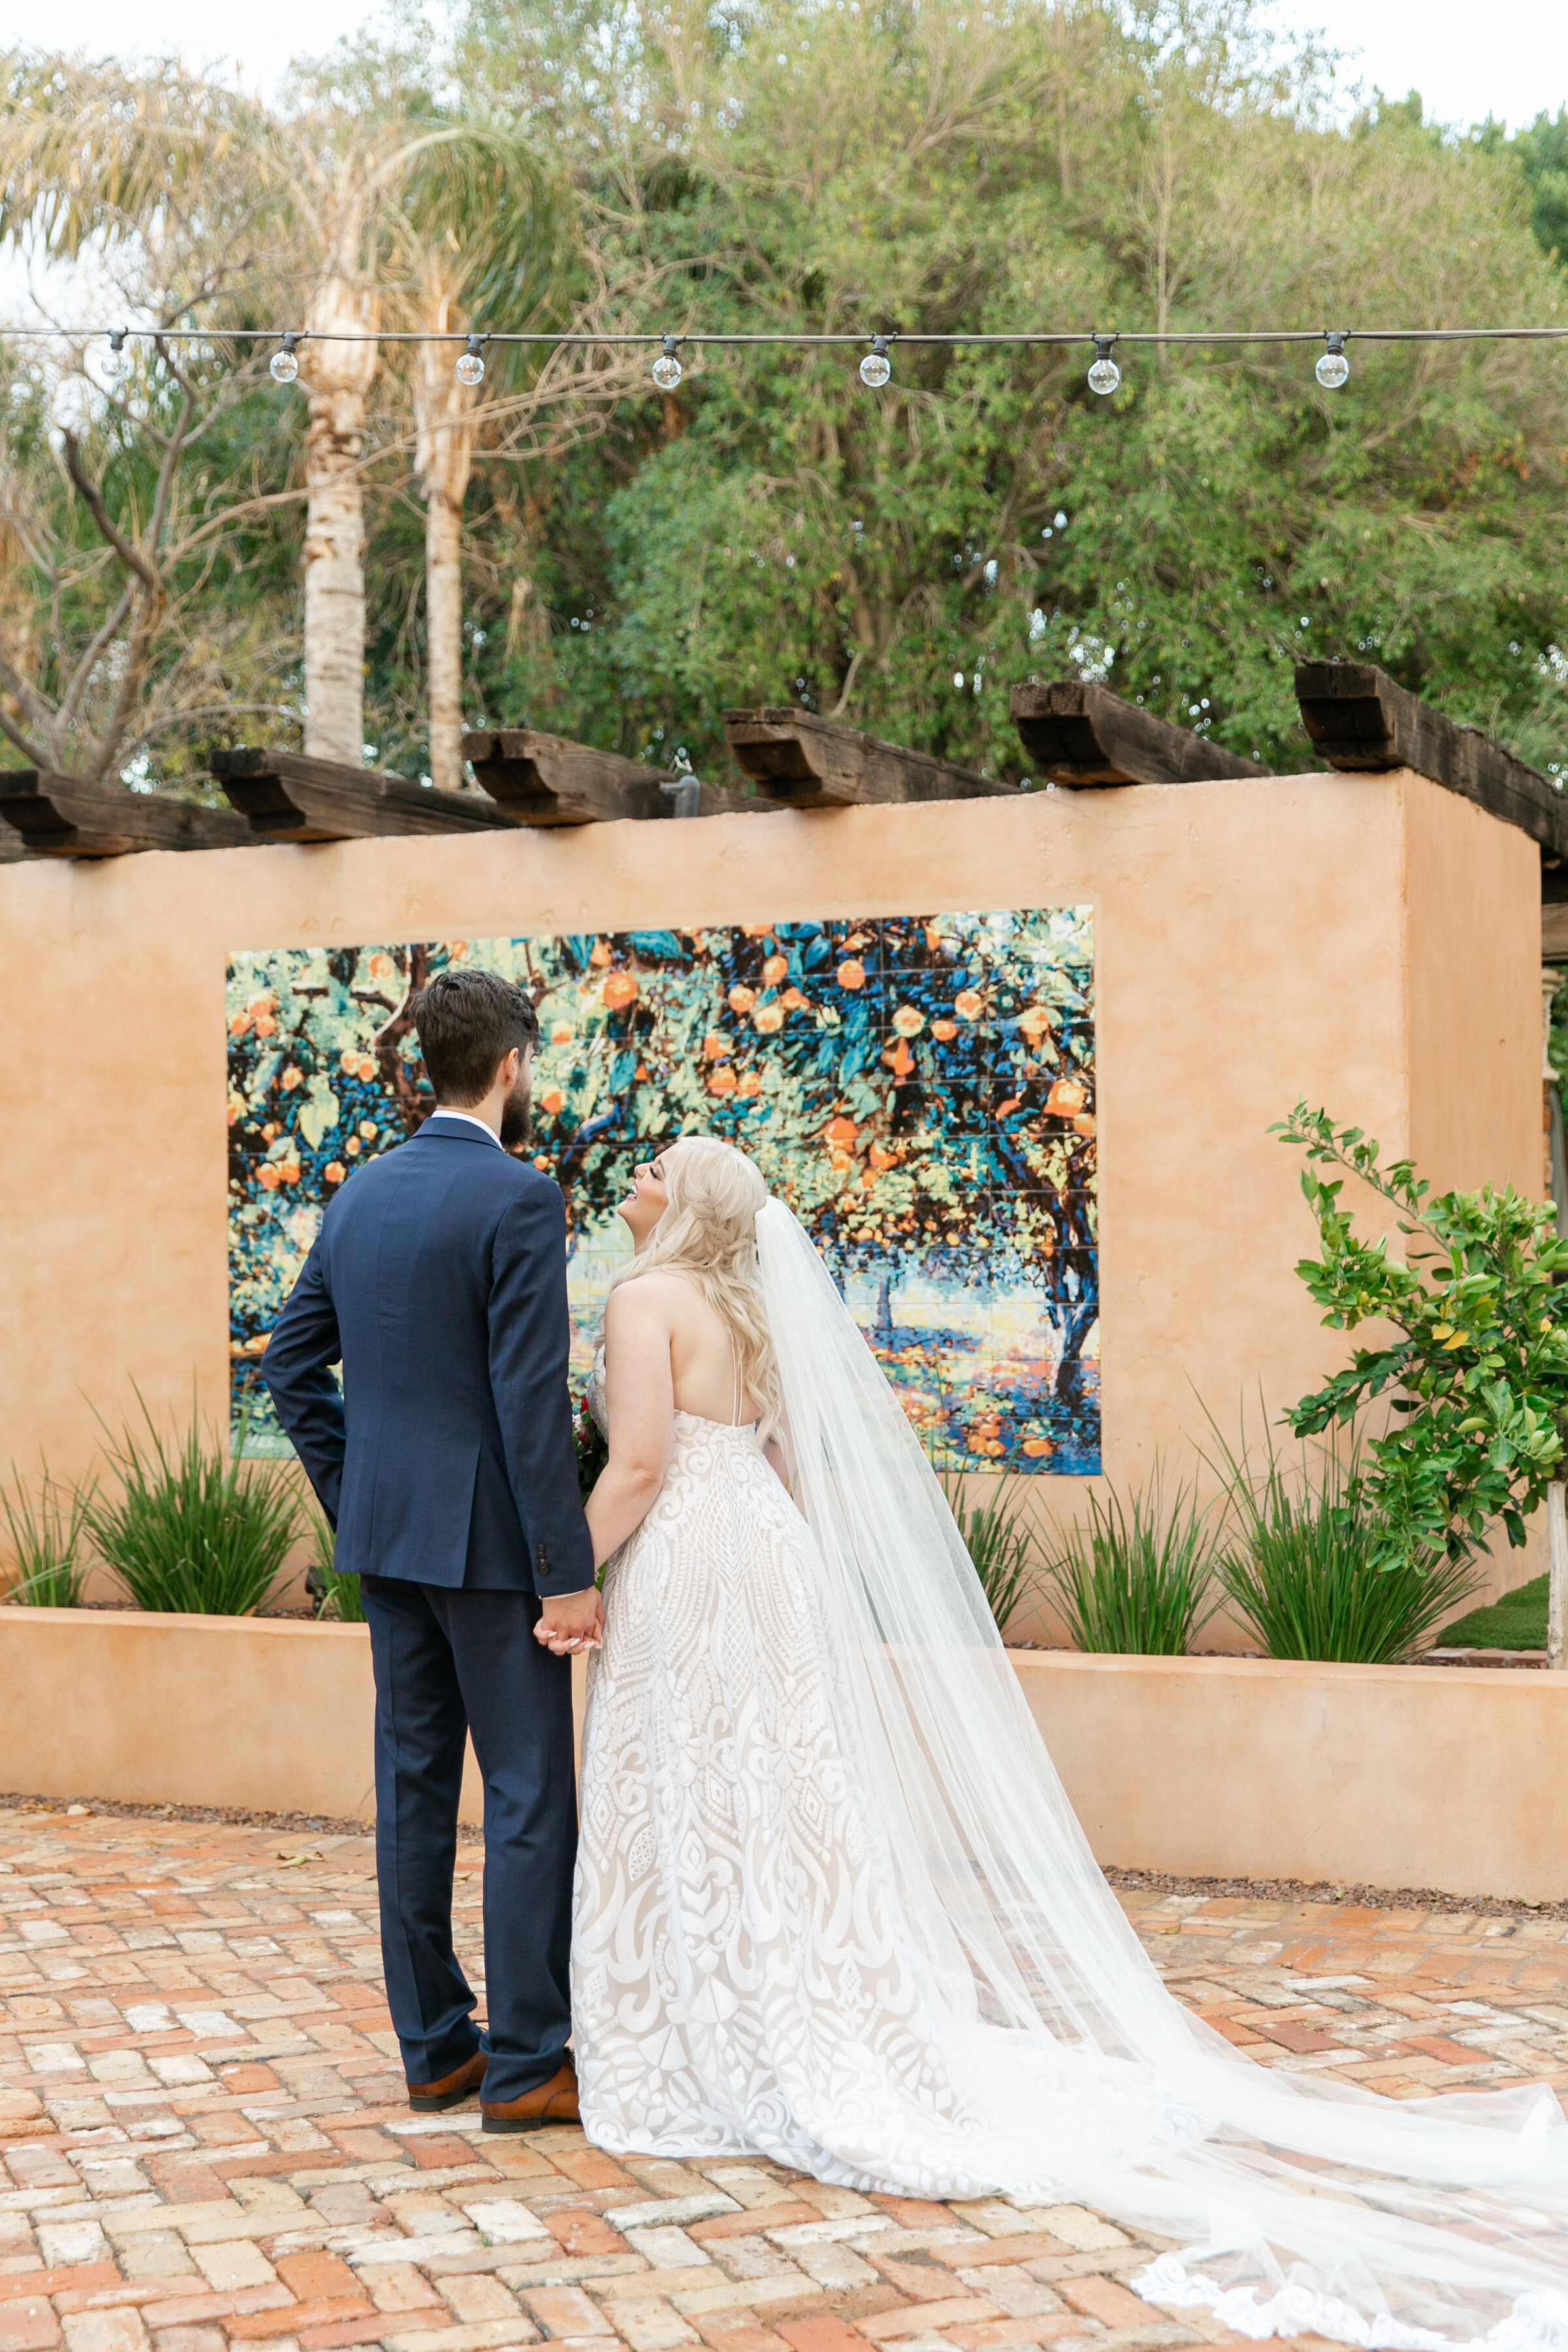 Karlie Colleen Photography - The Royal Palms Wedding - Some Like It Classic - Alex & Sam-532